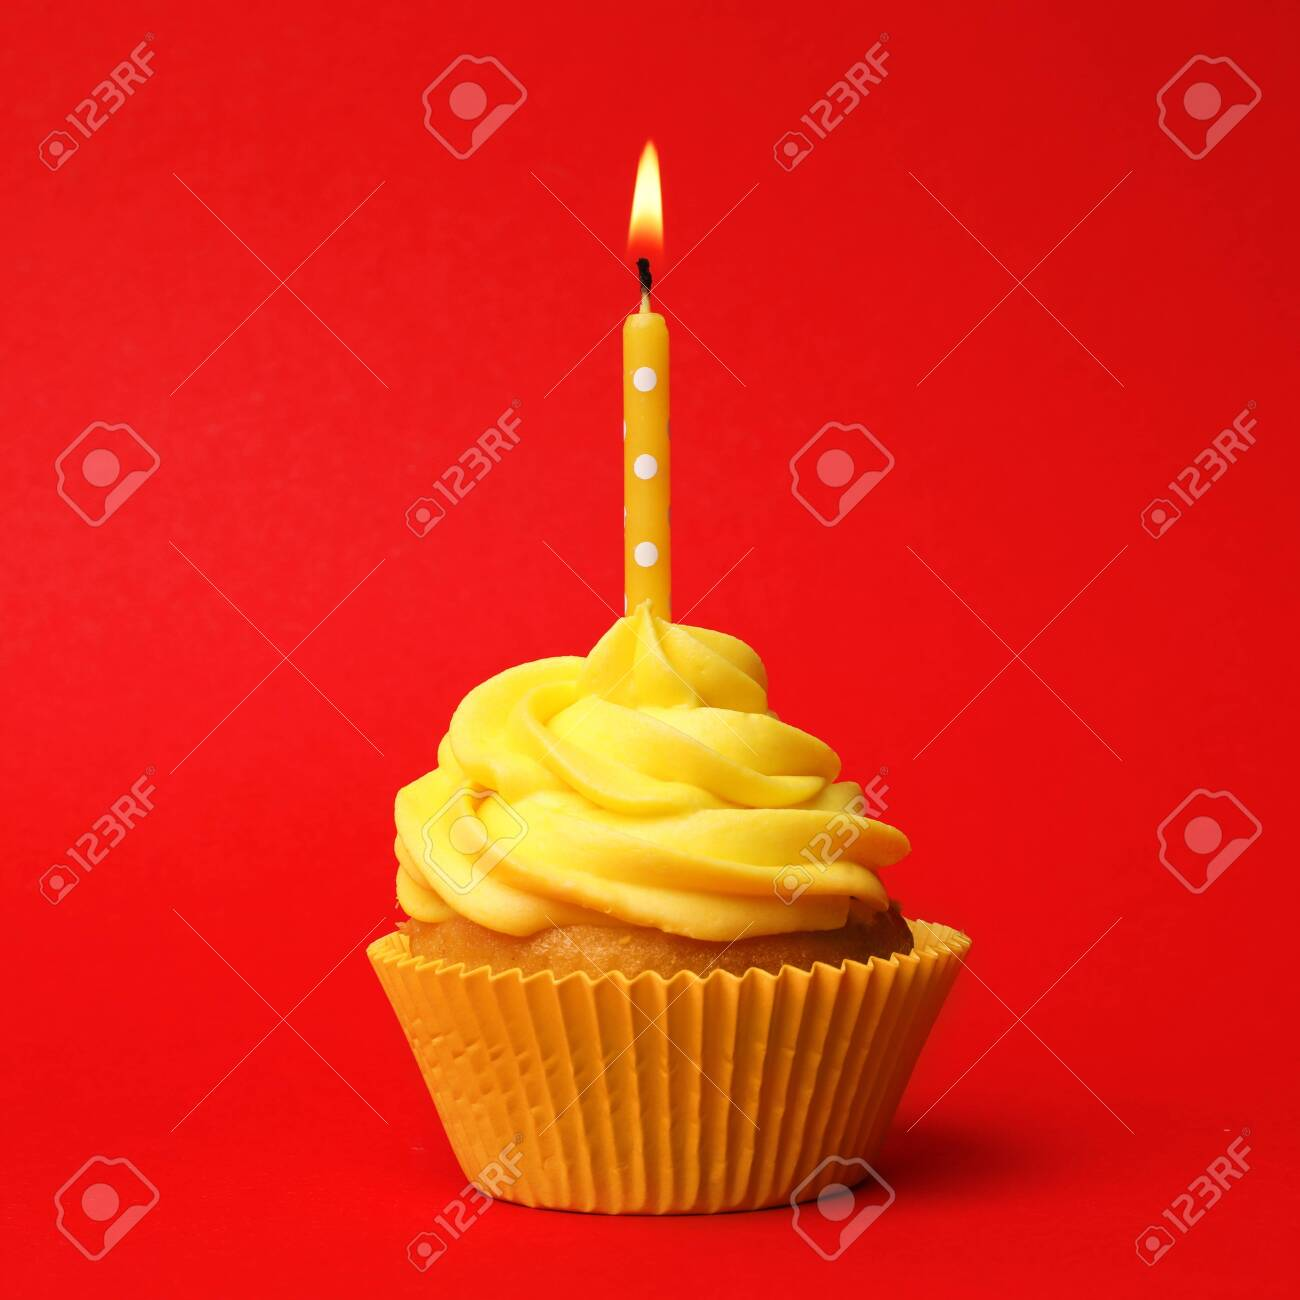 Delicious birthday cupcake with yellow cream and burning candle on red background - 139920398